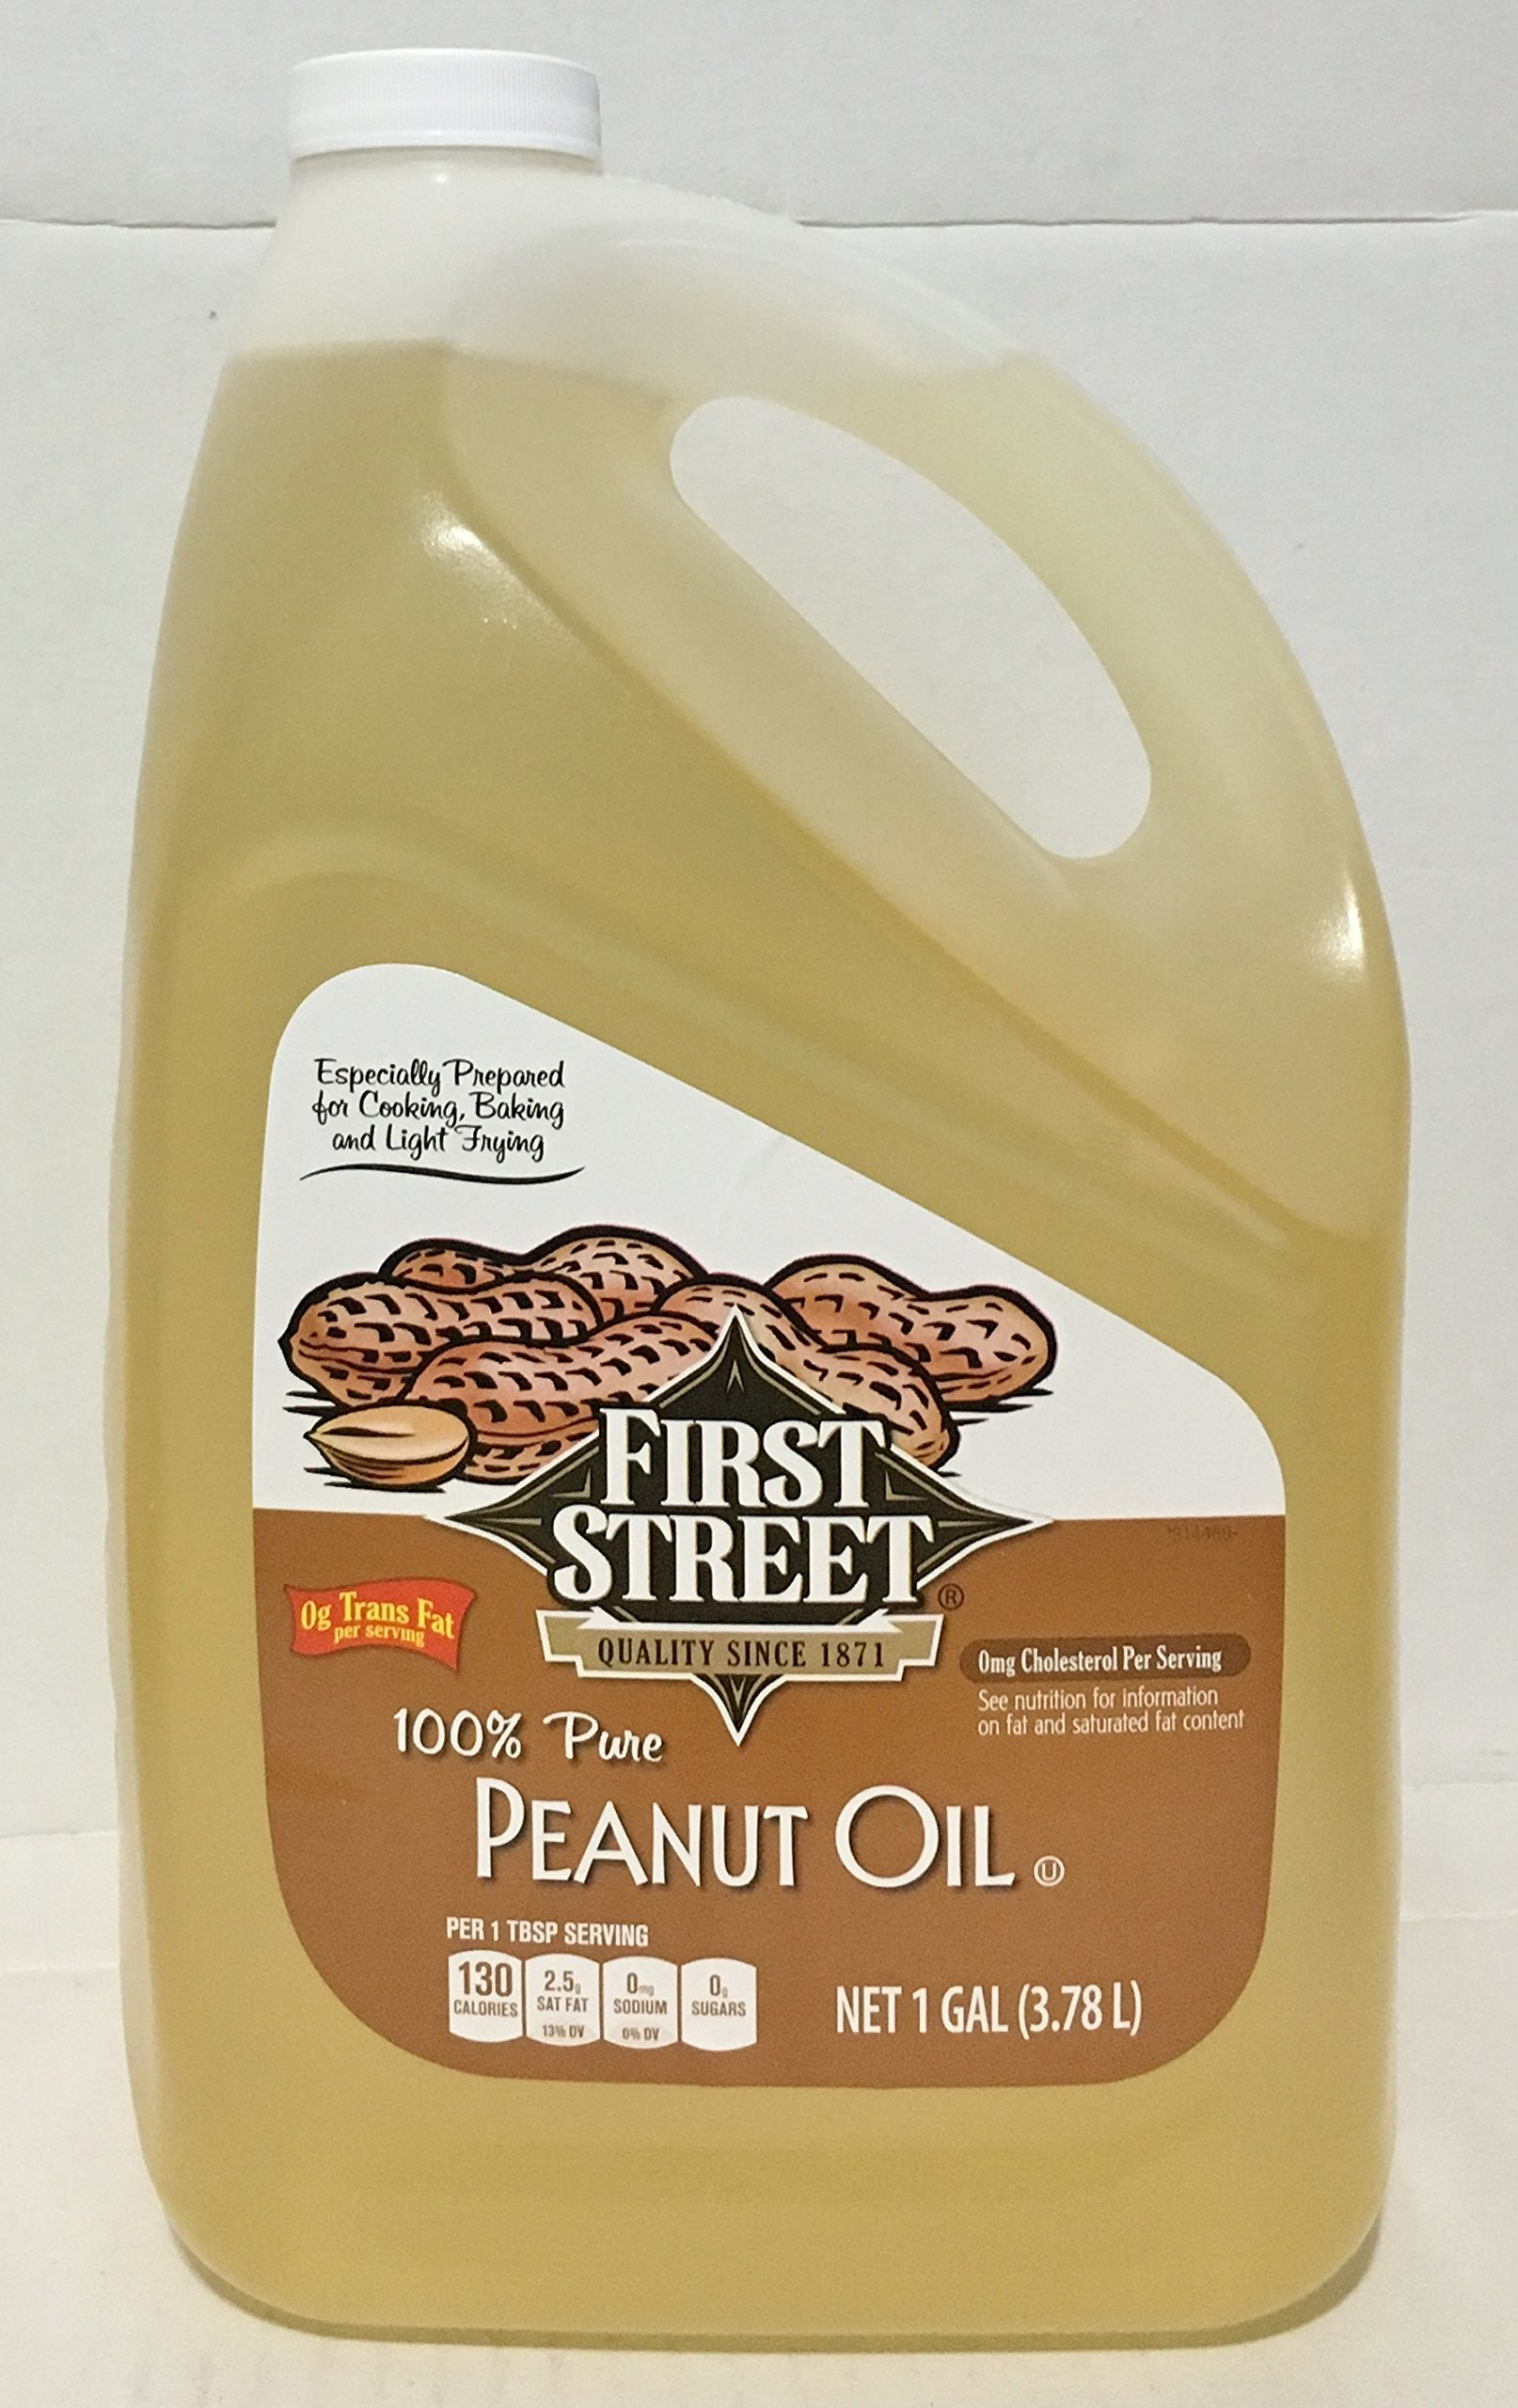 1 Gallon First Street 100% Pure Peanut Oil (3.79 Liter) For Cooking Light Frying Baking